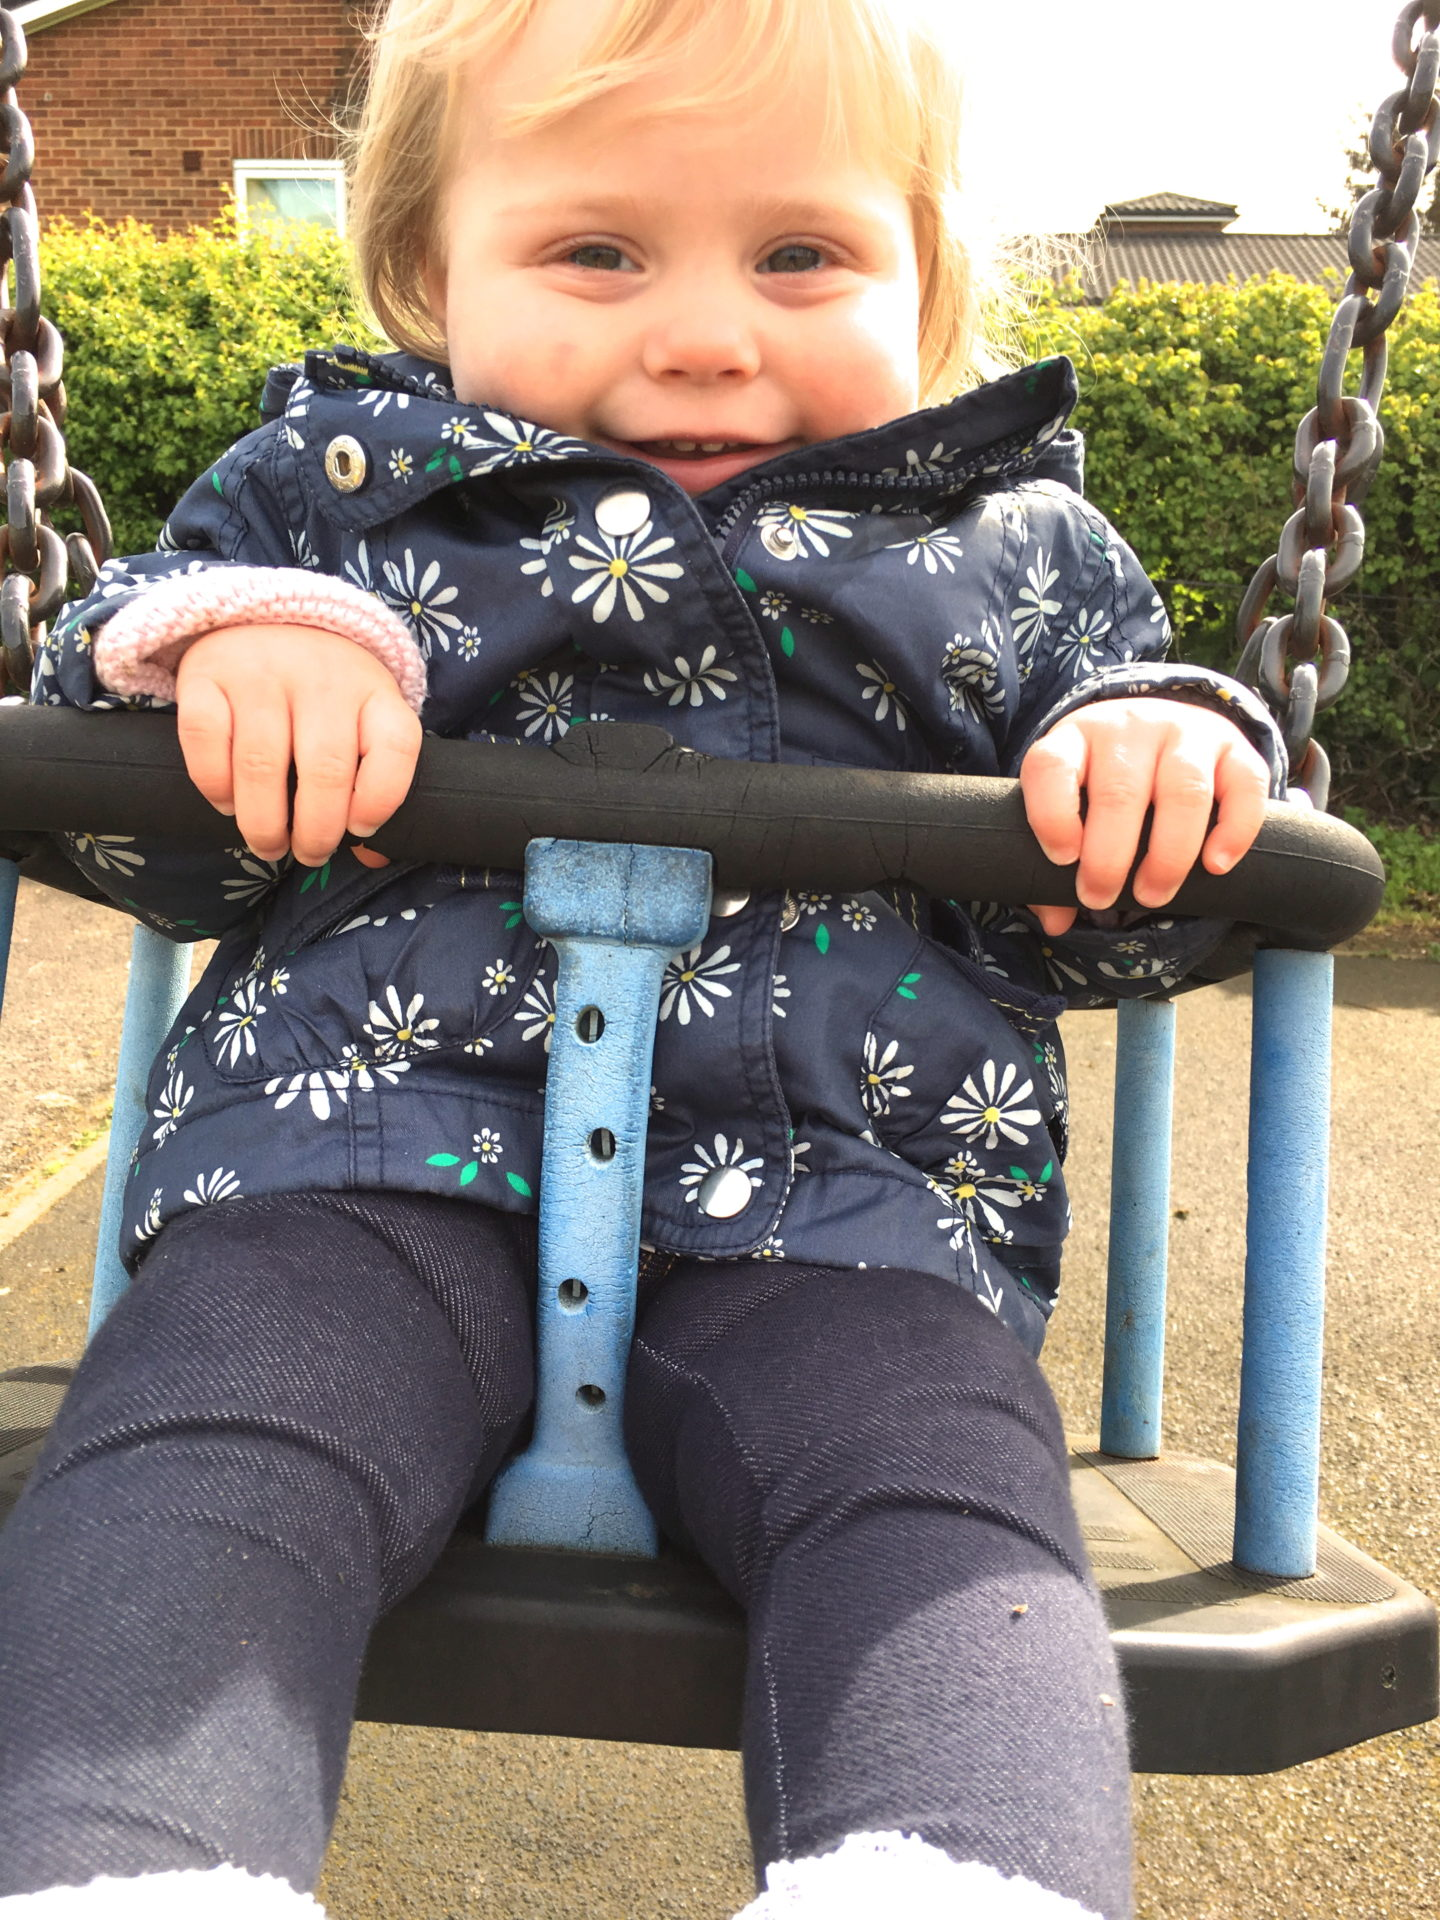 14 months old girl sitting in a swing